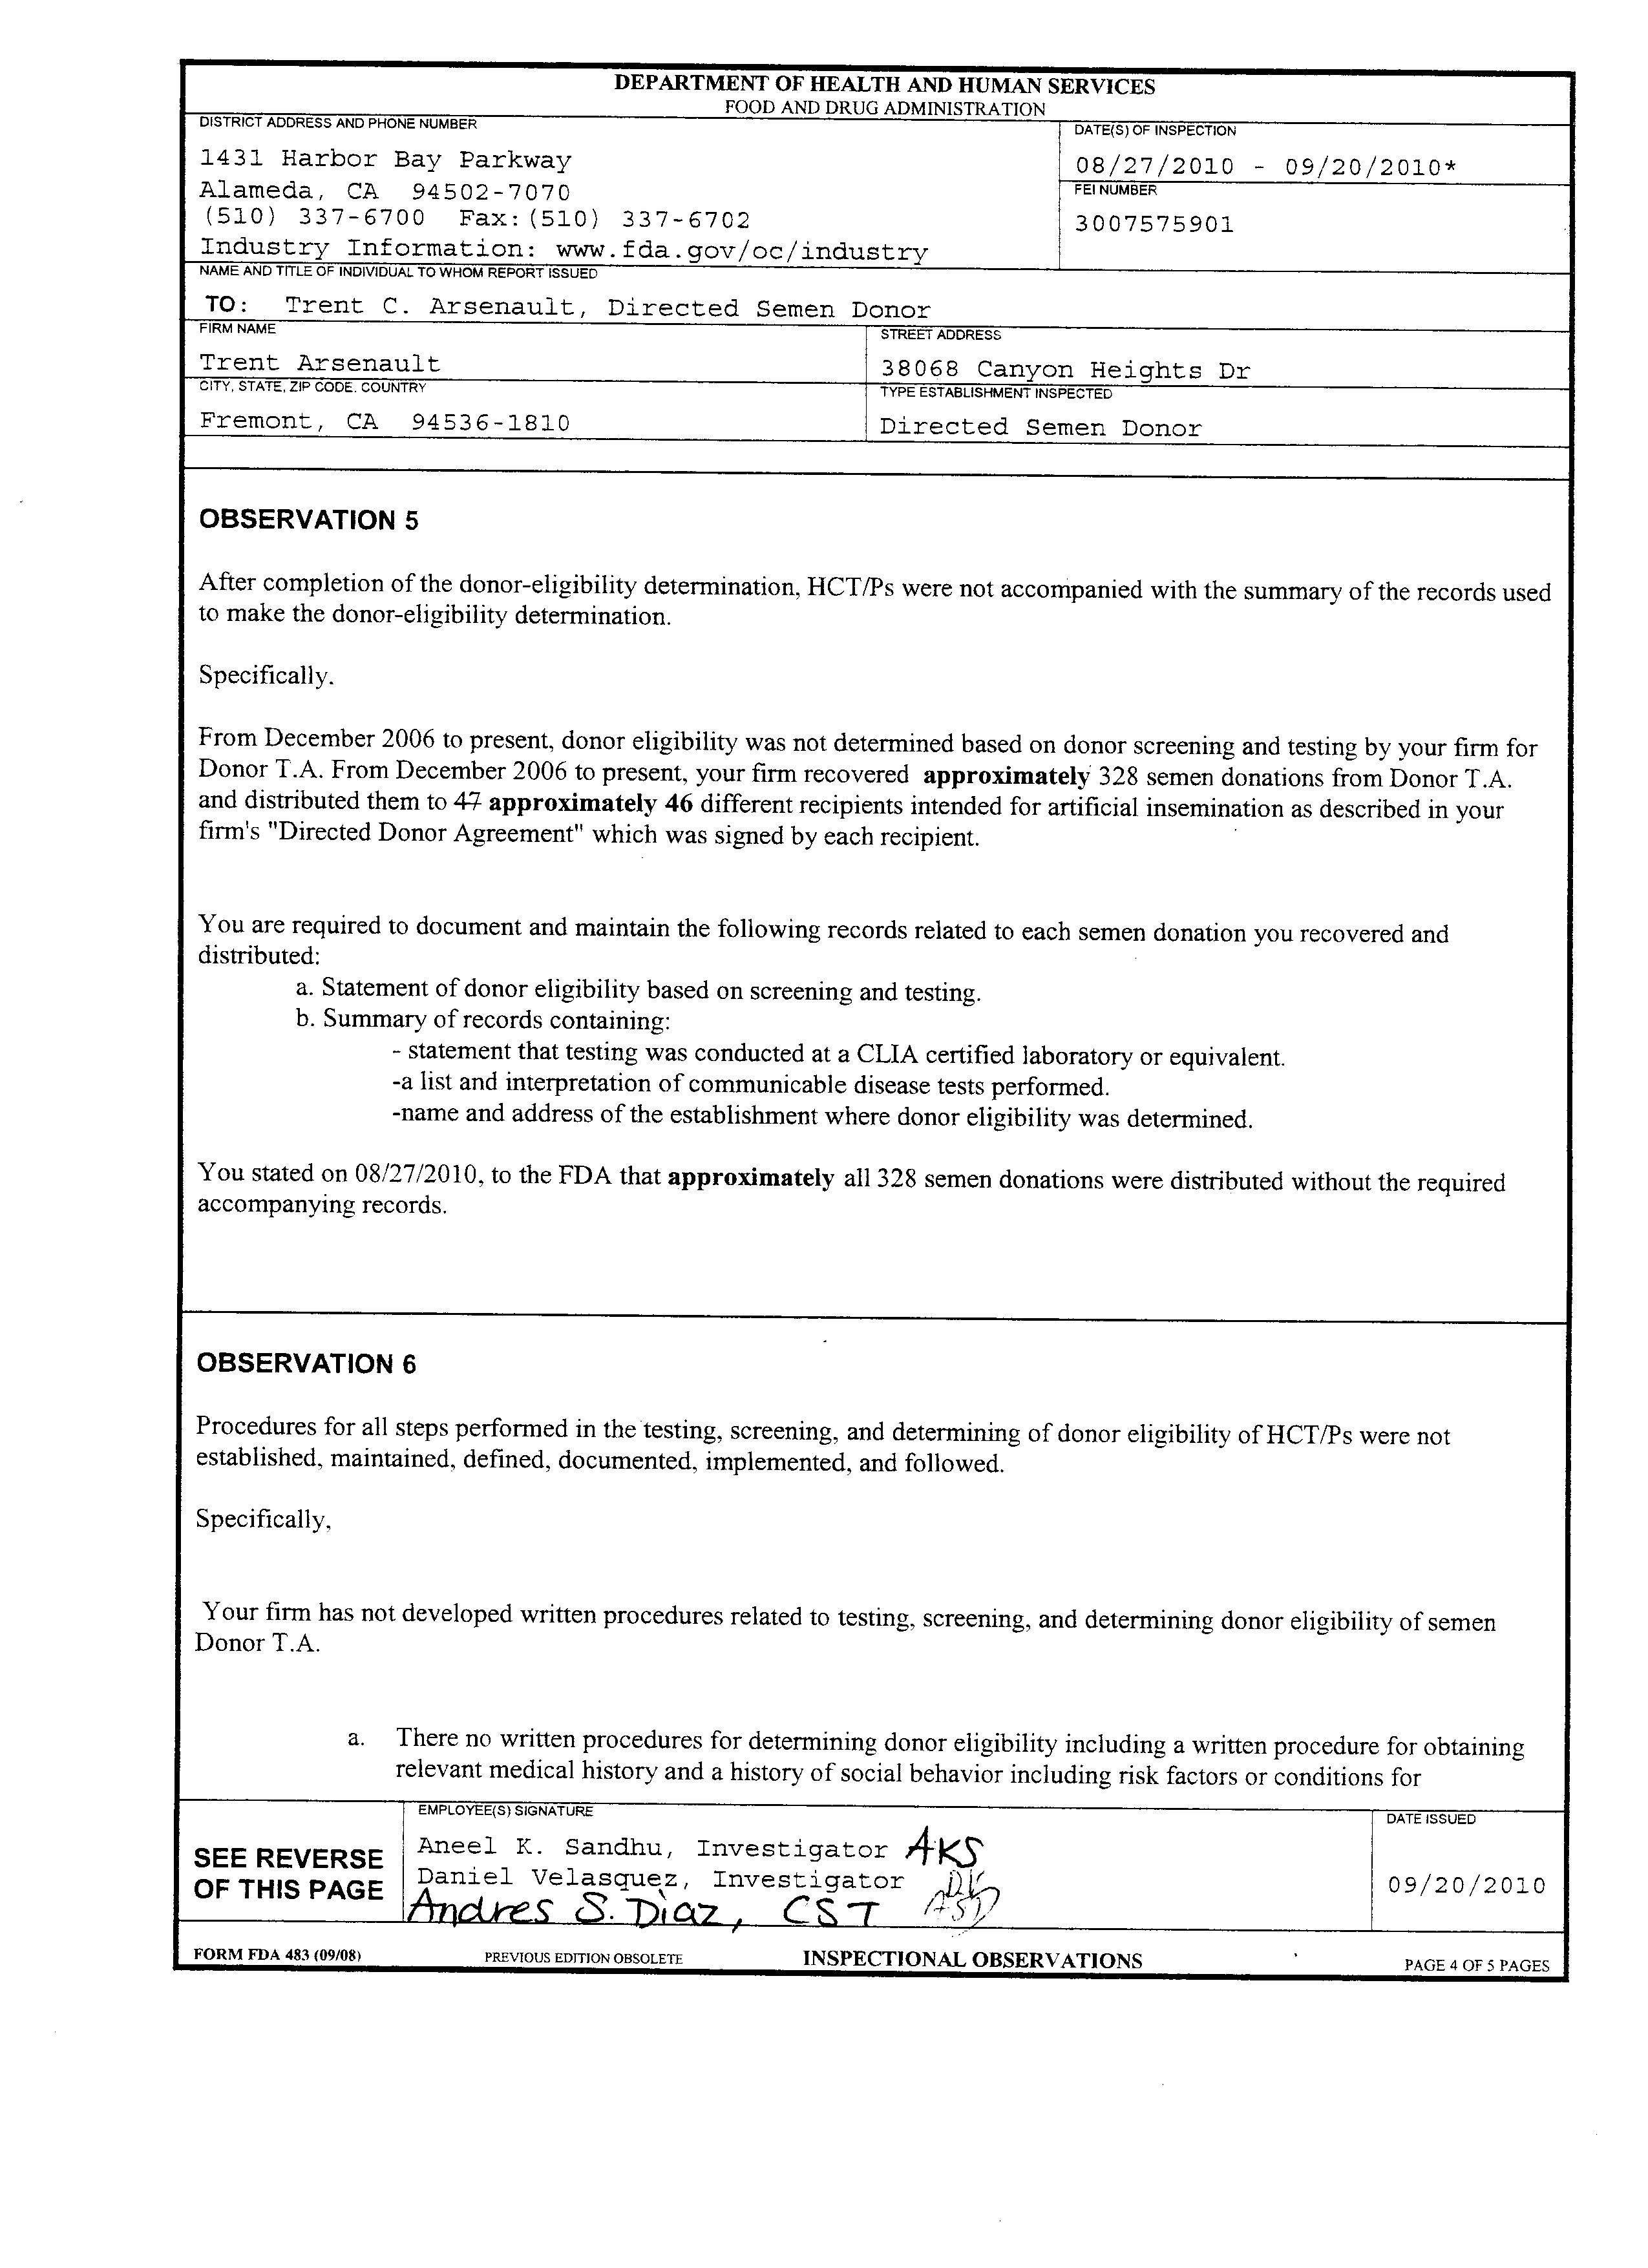 Form FDA 483 - Inspection Observations - 20-Sep-2010 - Page 4 of 5